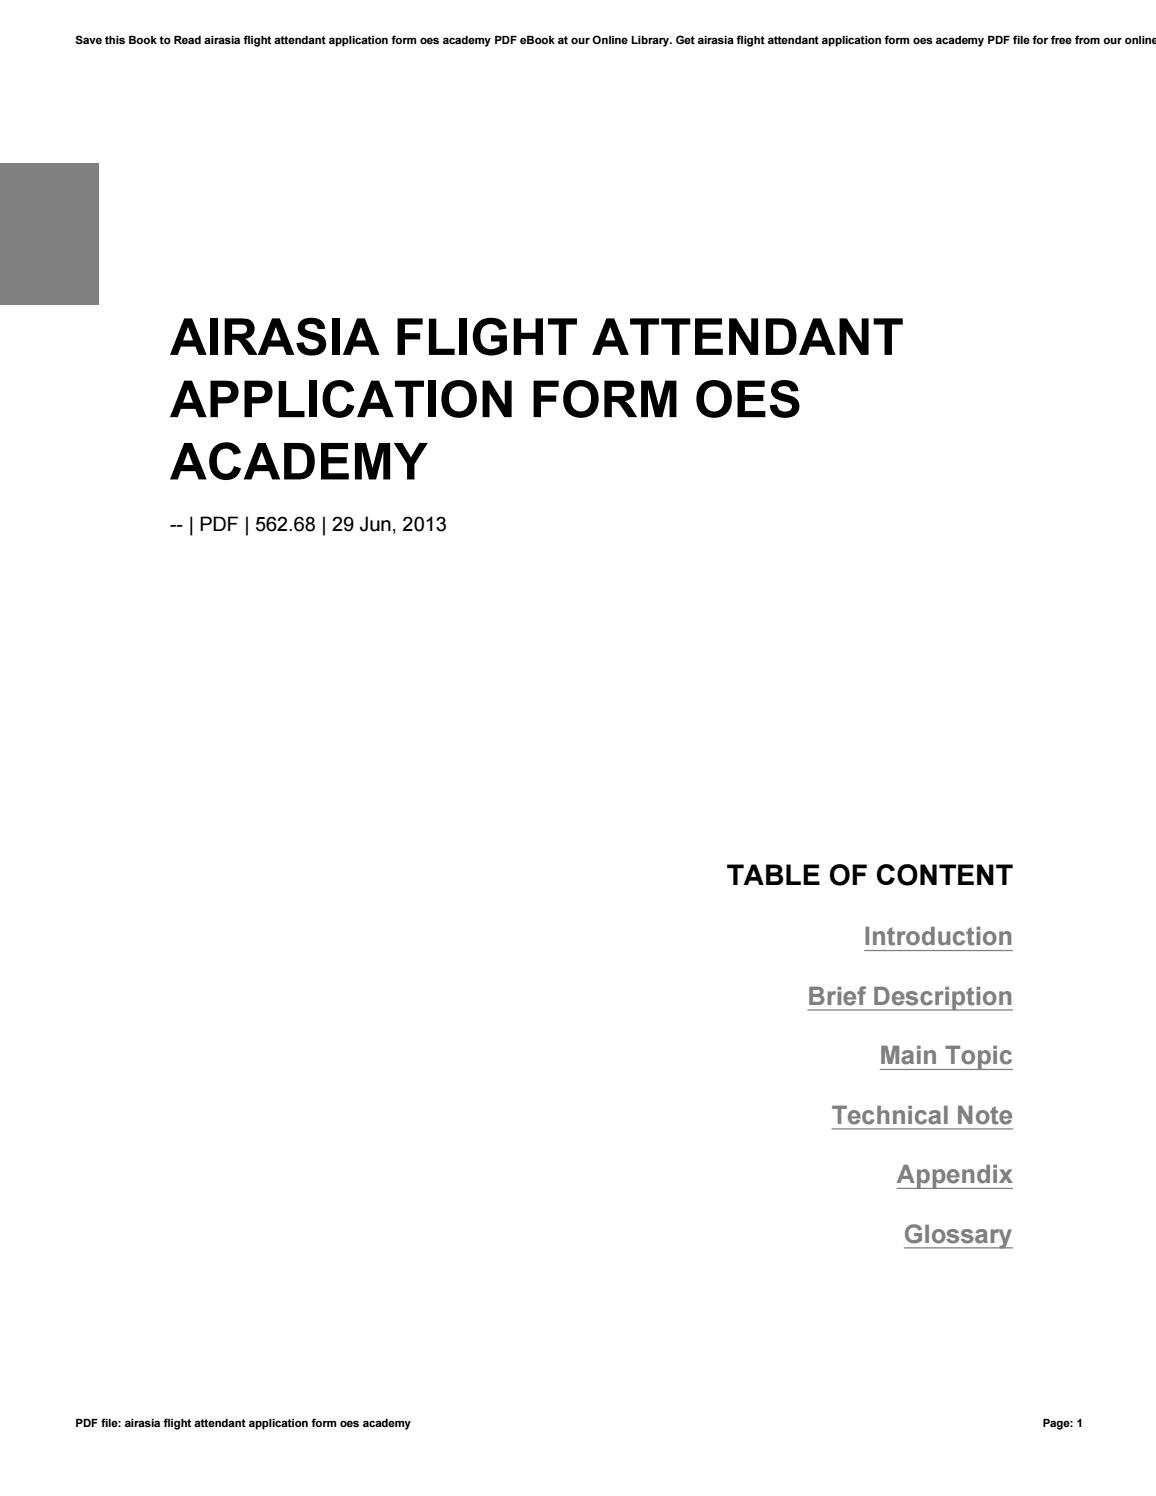 Flight Attendant Application Form Airasia